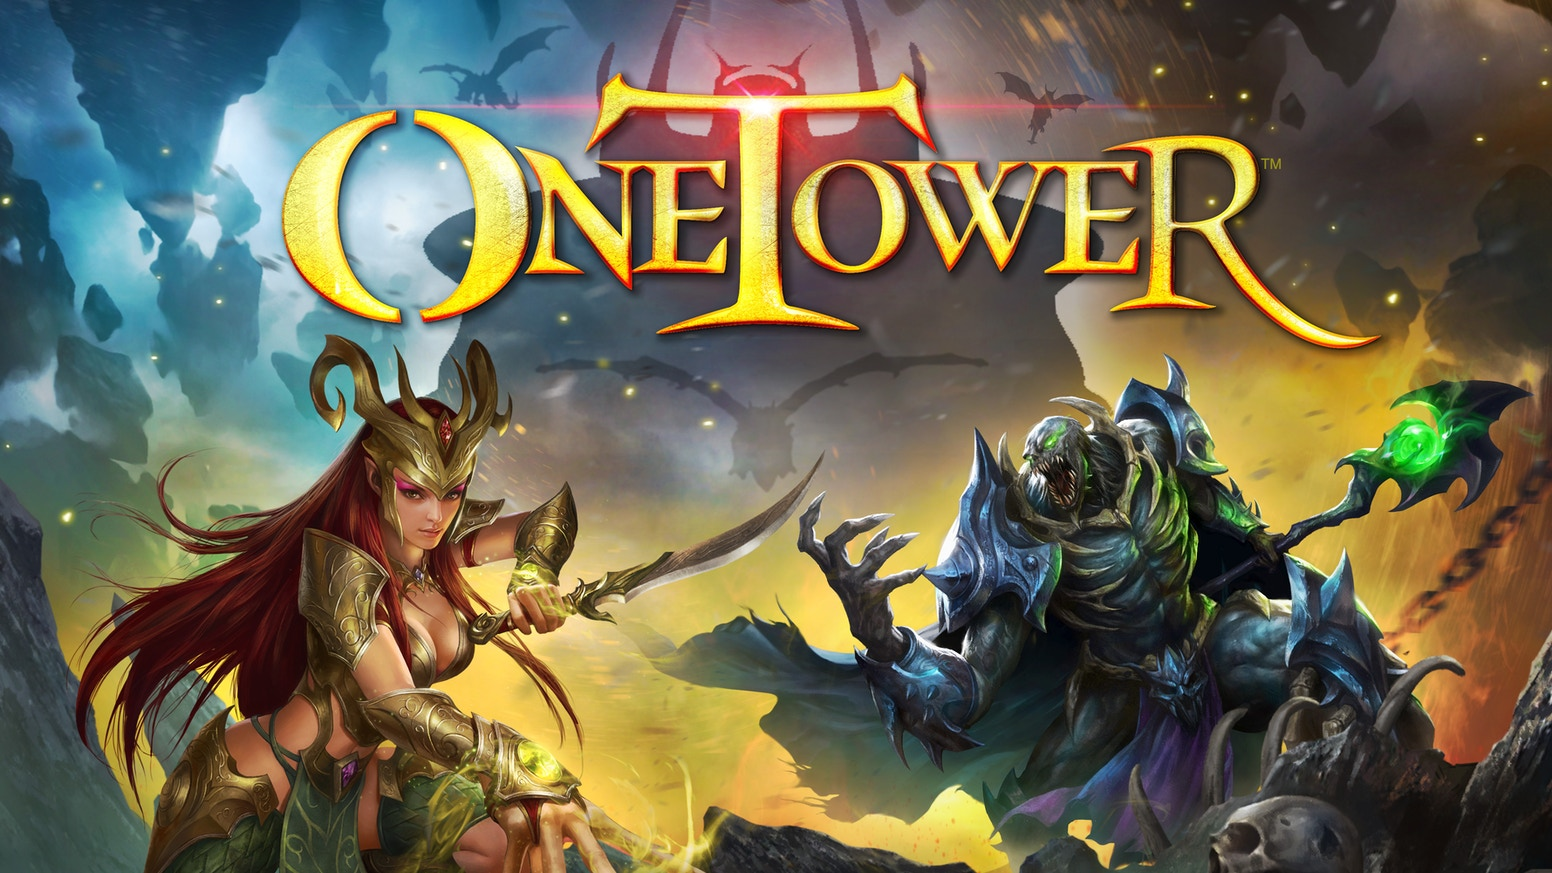 One Tower is a fast-paced head-to-head battle arena game. Unleash custom minion waves & command a powerful Hero to destroy the enemy.